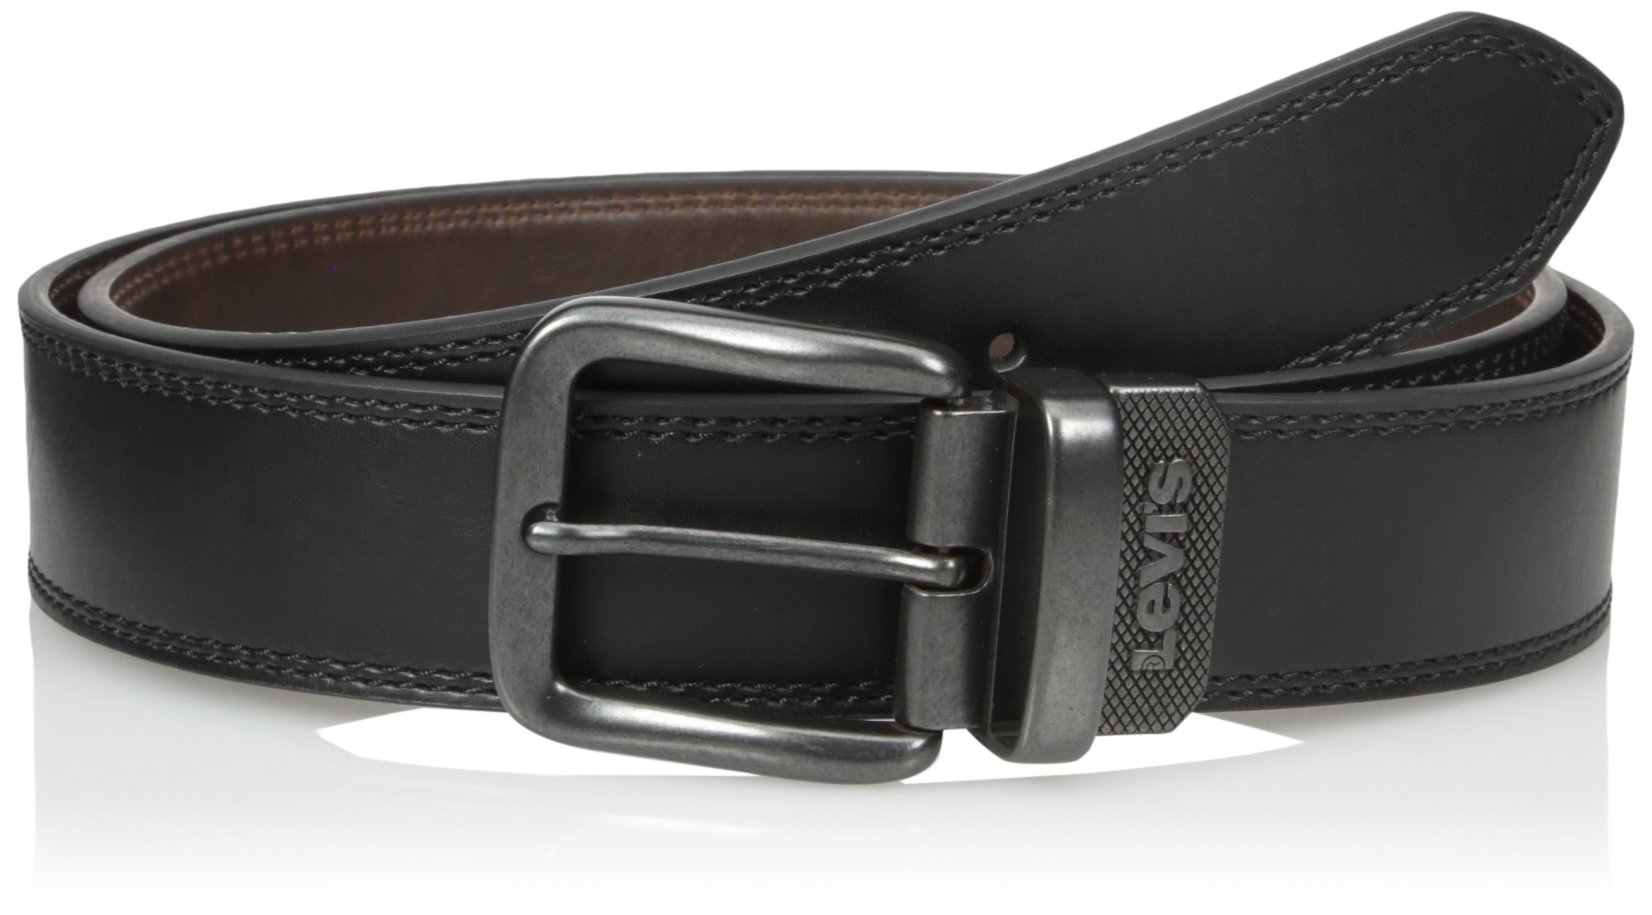 Levi's Men's Big-Tall 1 9/16 Inch Reversible Belt with Gunmetal Buckle